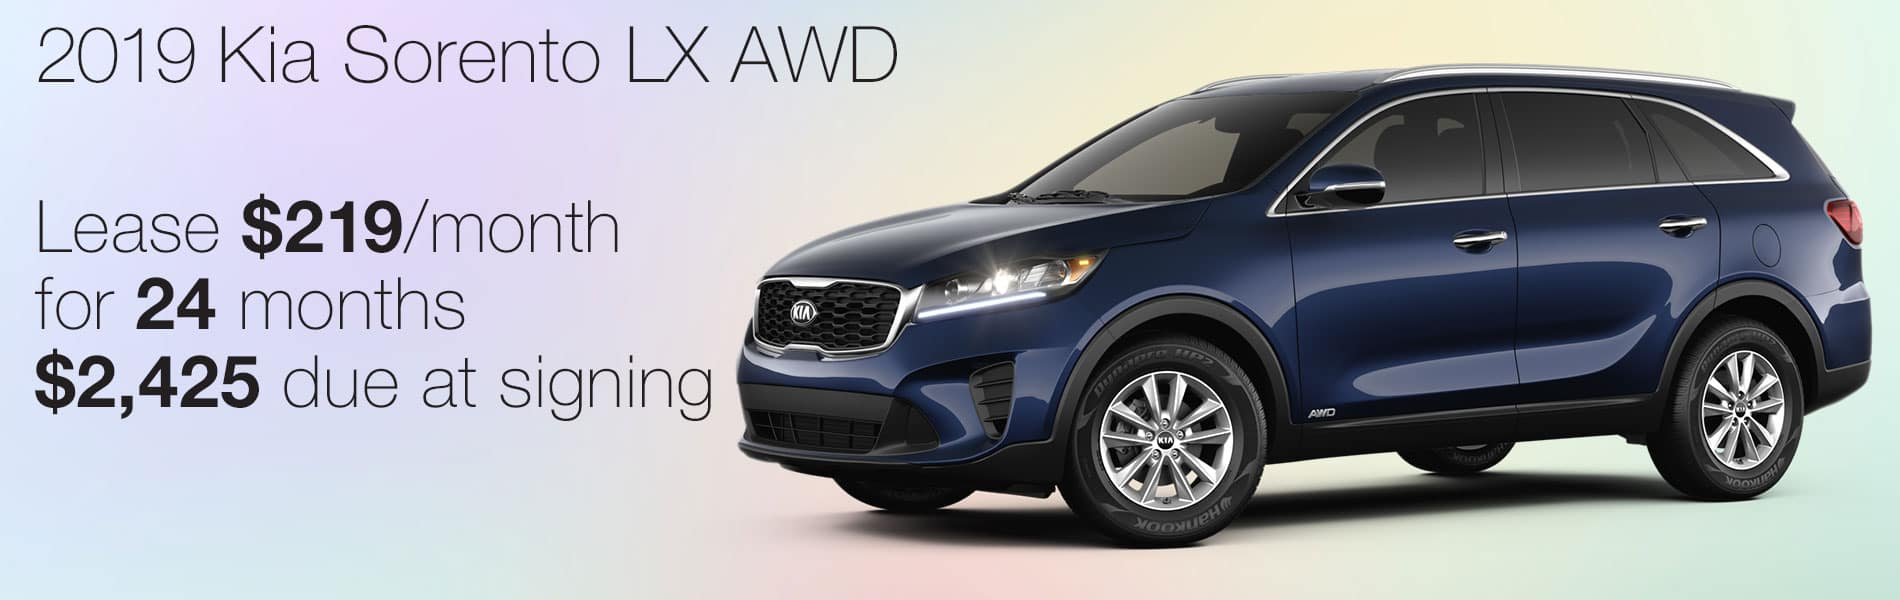 Lease a 2019 Kia Sorento LX AWD for $219 per month with $2,425 due at signing